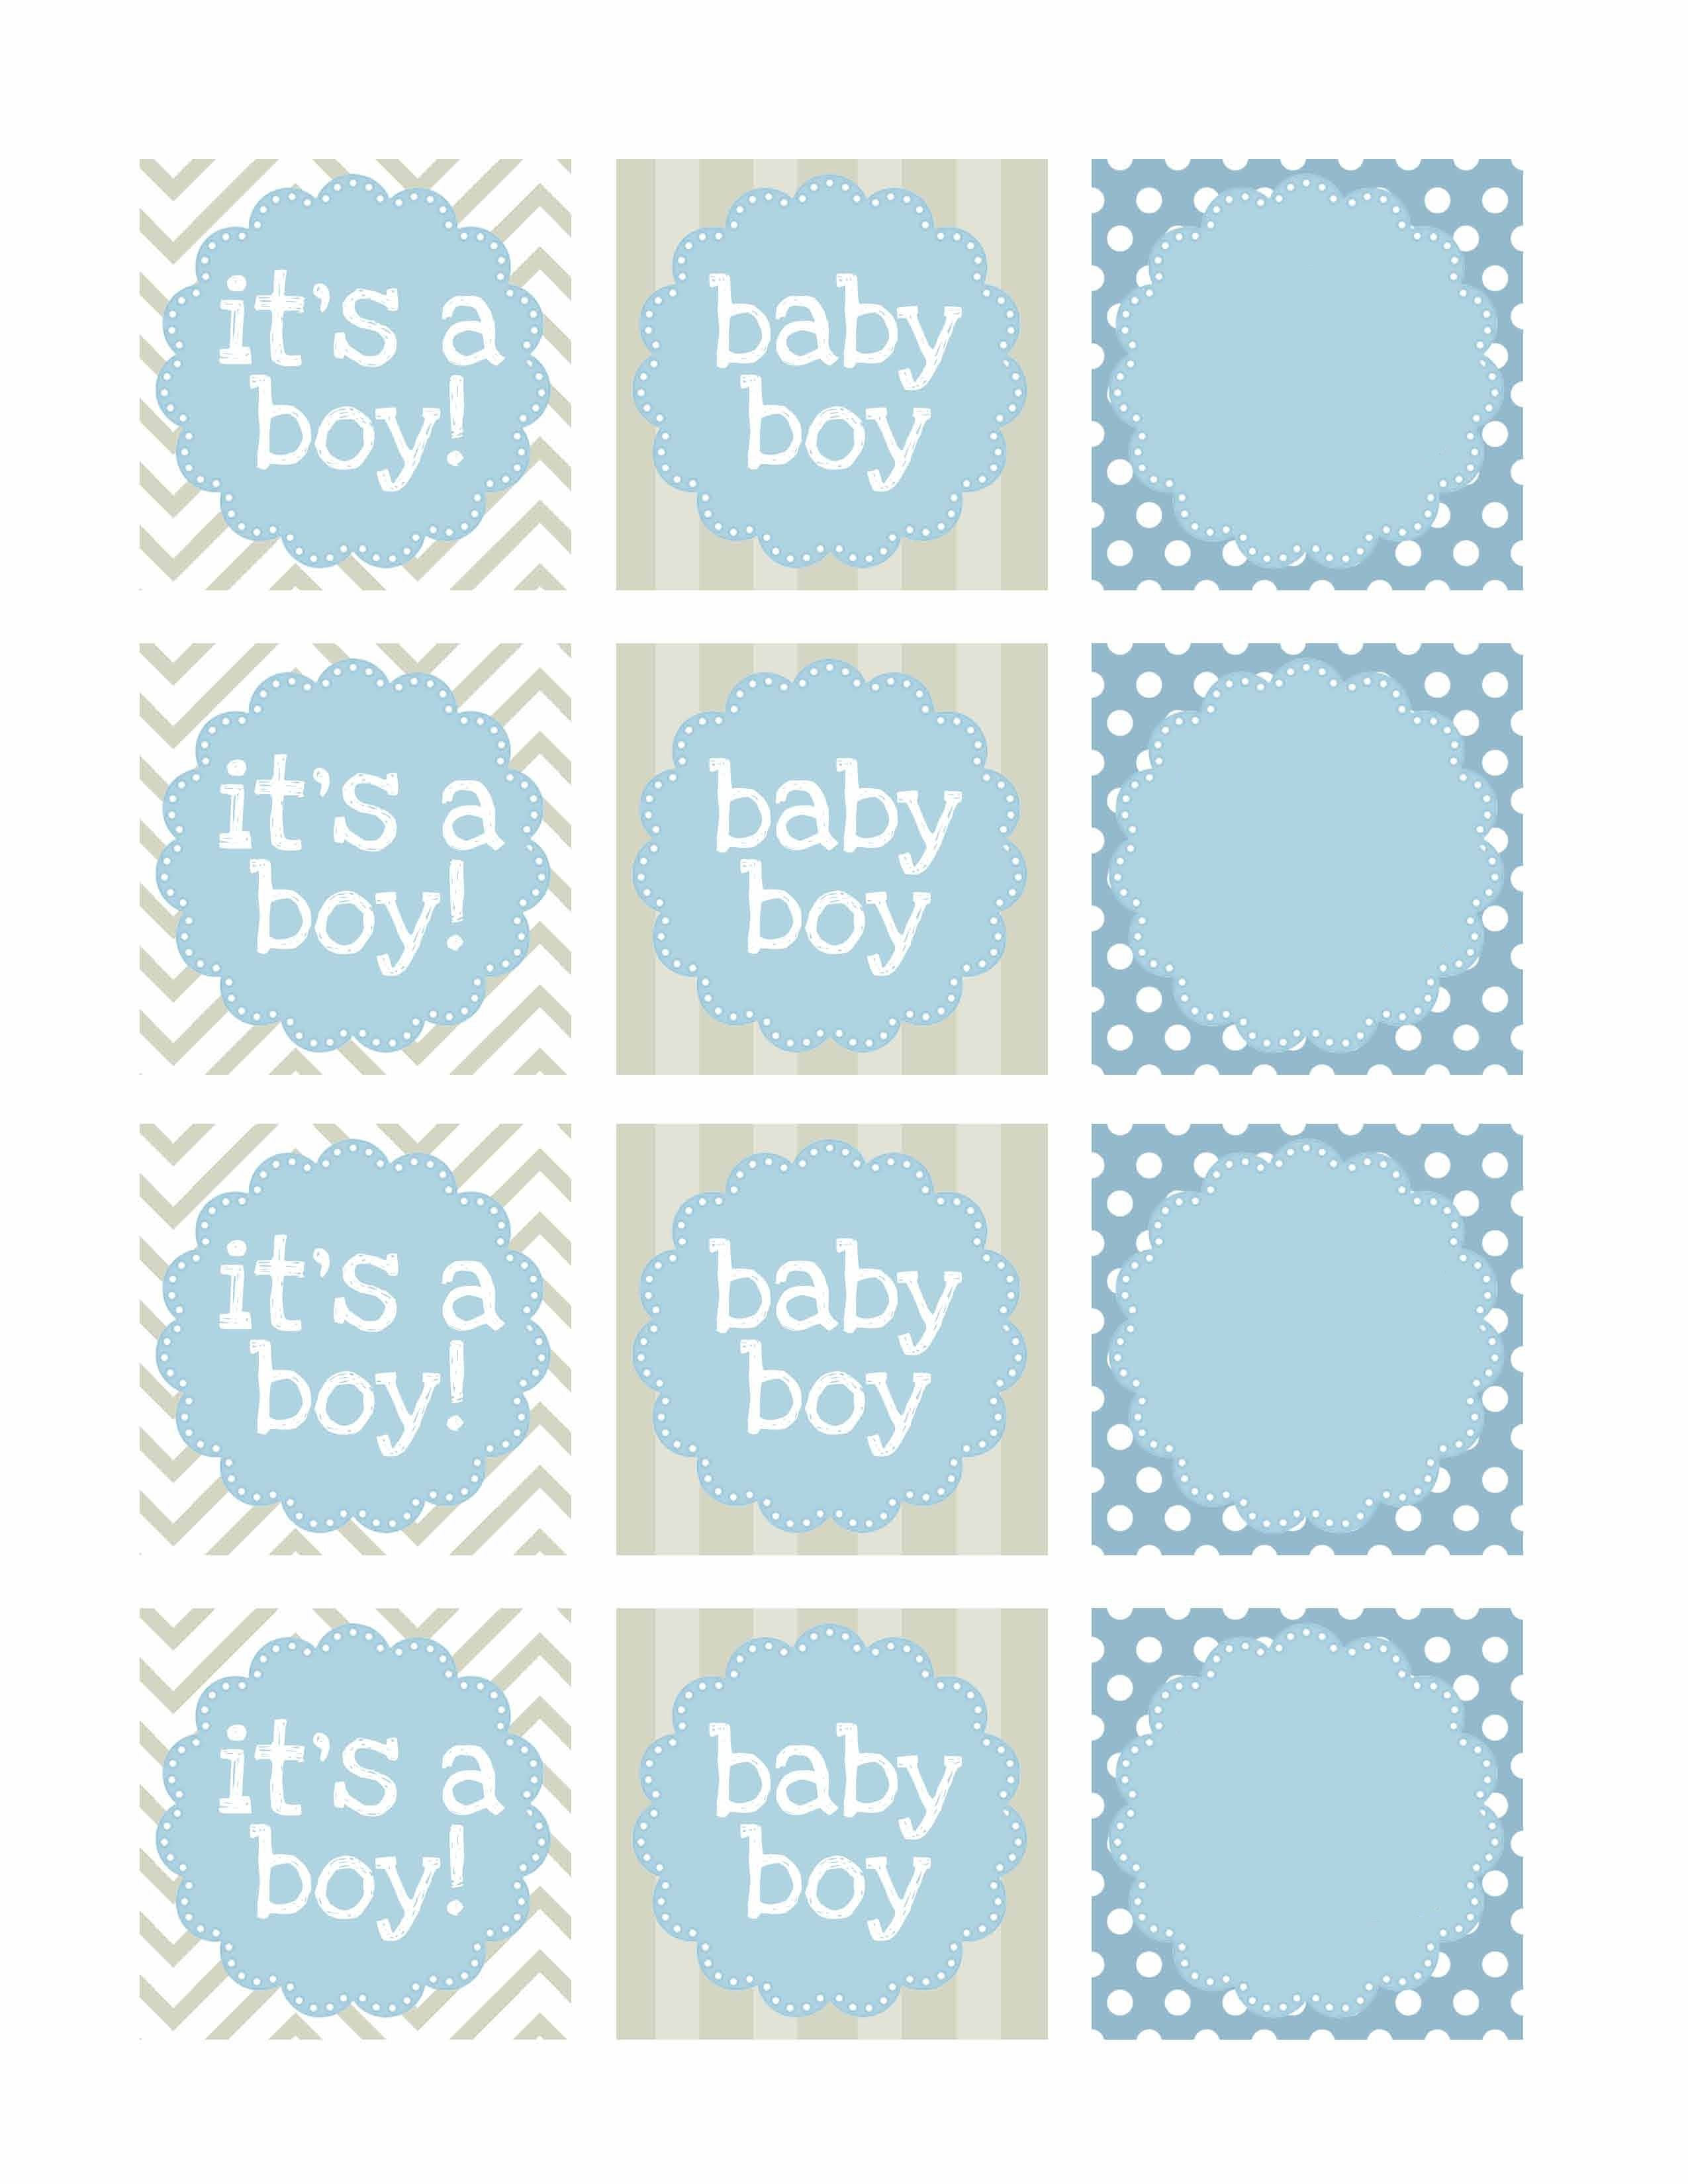 Boy Baby Shower Free Printables | Baby Shower | Baby Shower Labels - Free Printable Baby Shower Decorations For A Boy